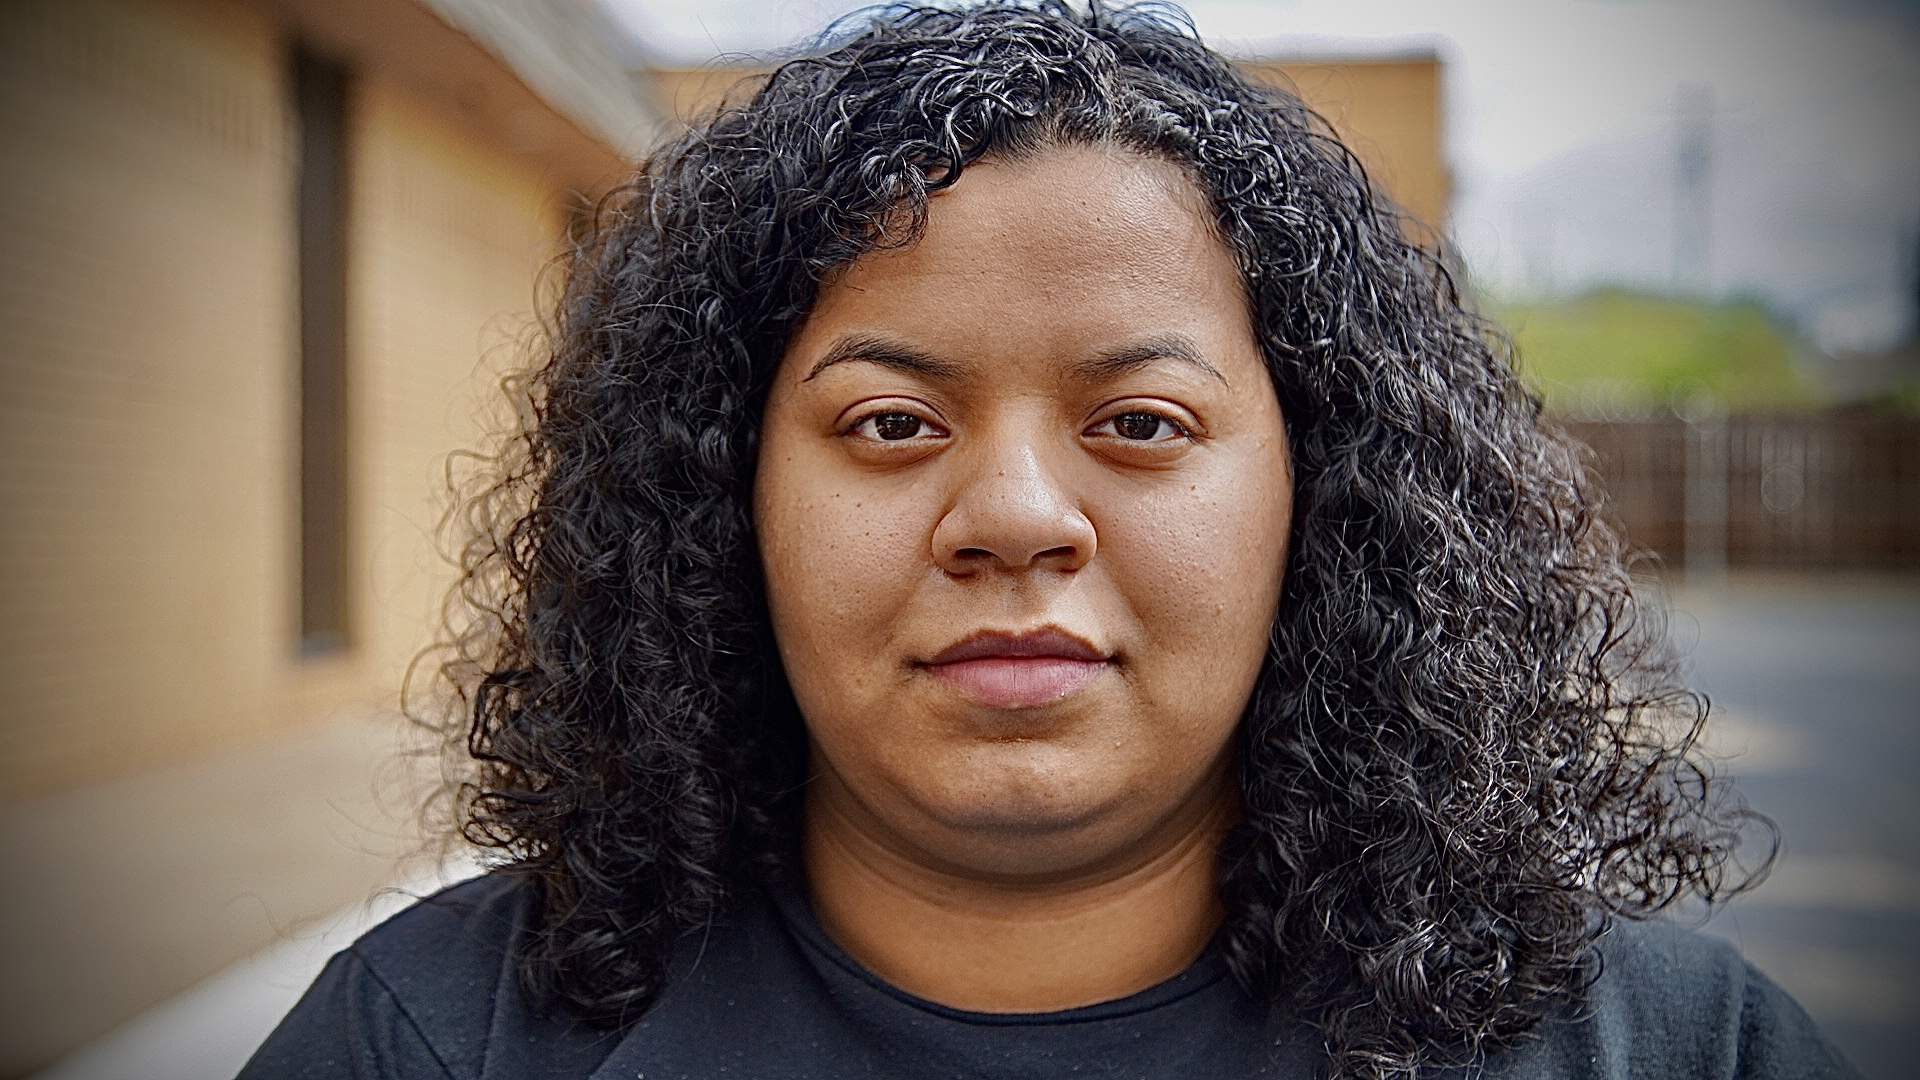 JASMINE IS A 26-YEAR-OLD MOTHER OF TWO. SHE TOOK OUT A LOAN TO HELP PAY FOR HER TRIP TO OKLAHOMA.